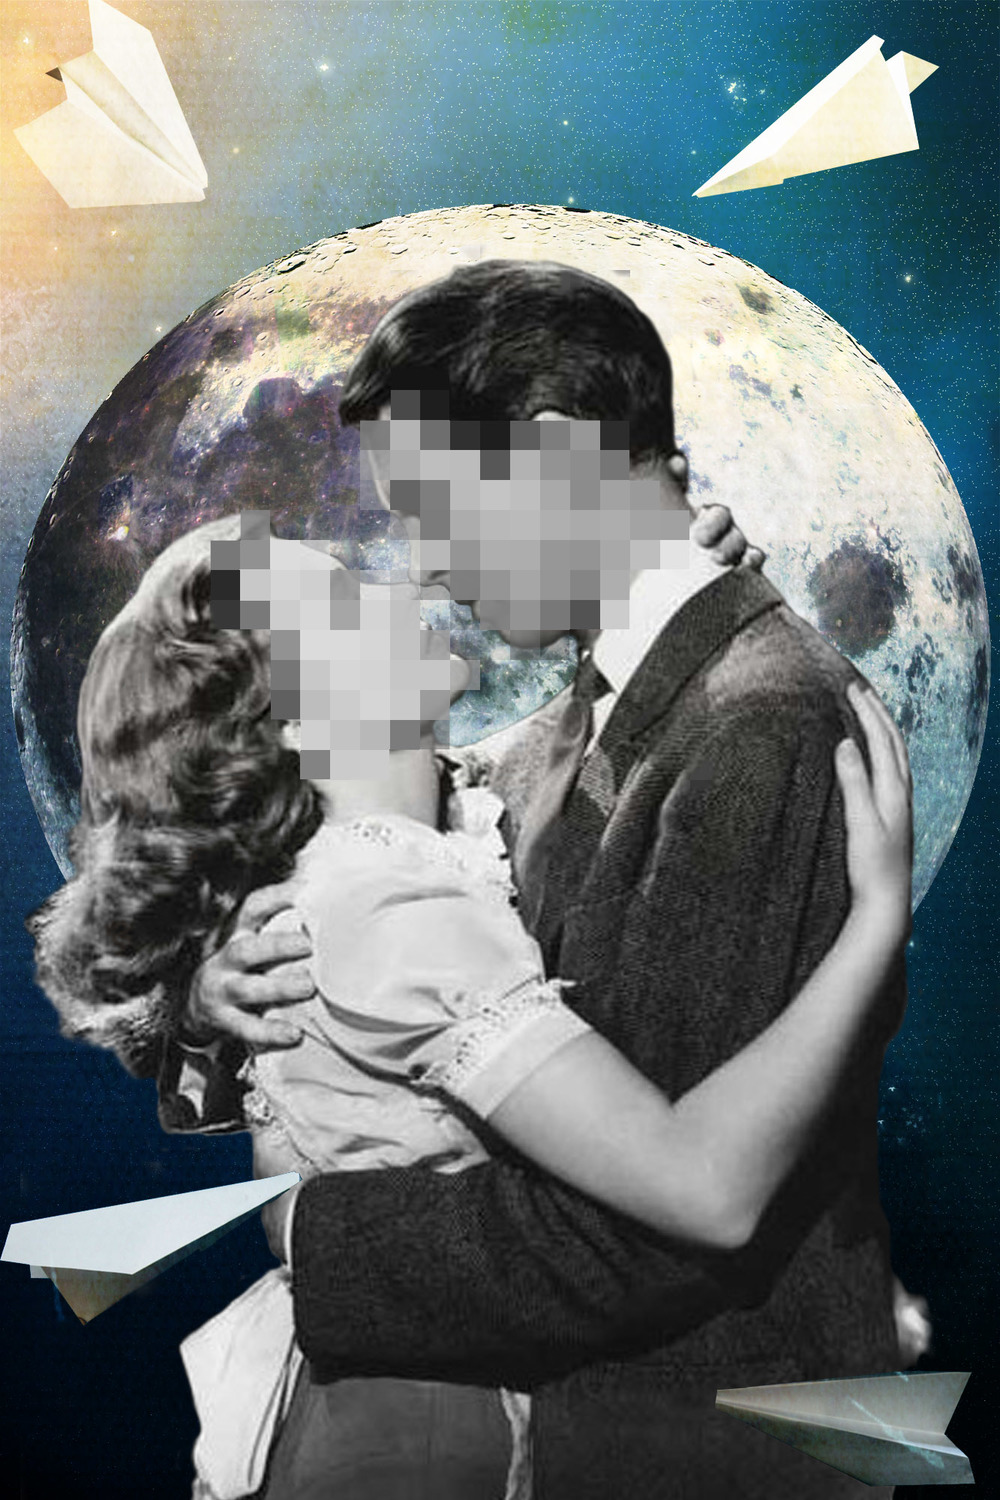 Jenkins, Cheyenne.  Lost Lovers.  2014. Digital Collage. Montreal, Quebec